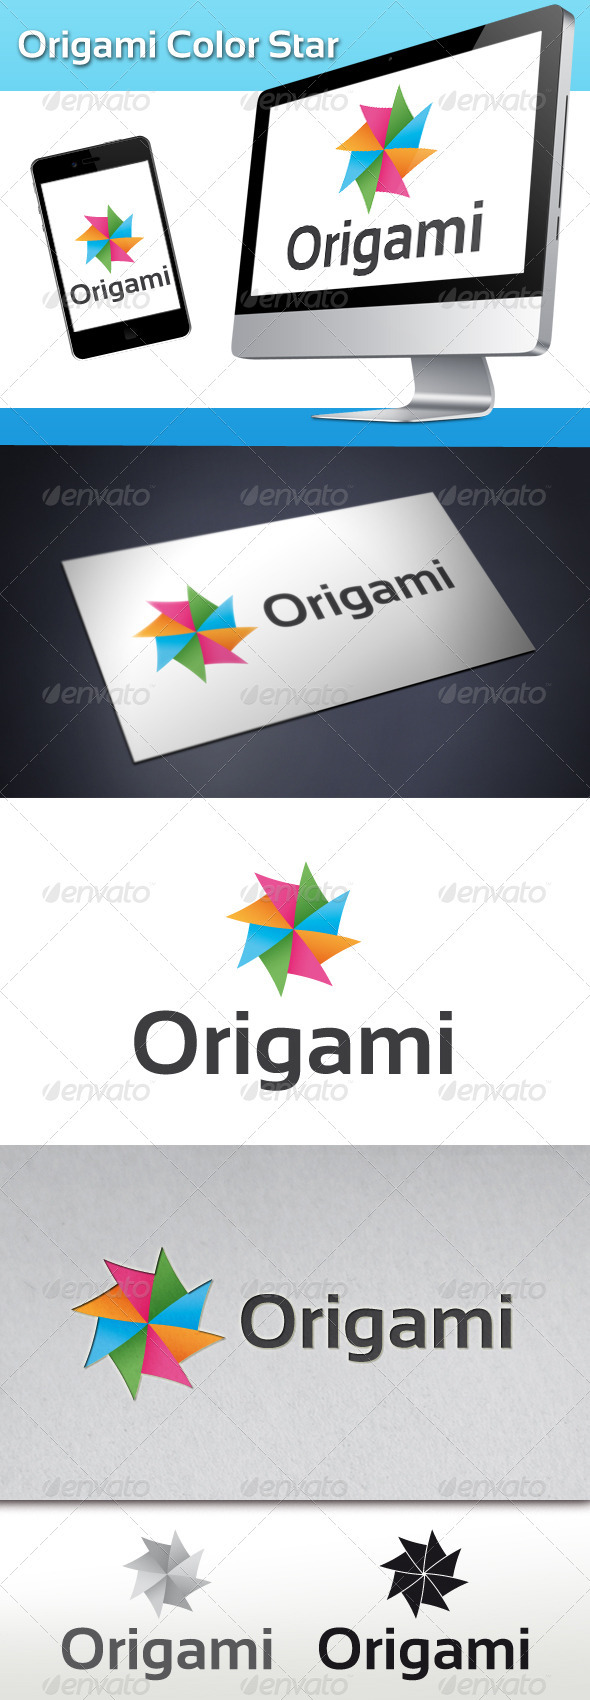 Origami Color Star Logo - Abstract Logo Templates